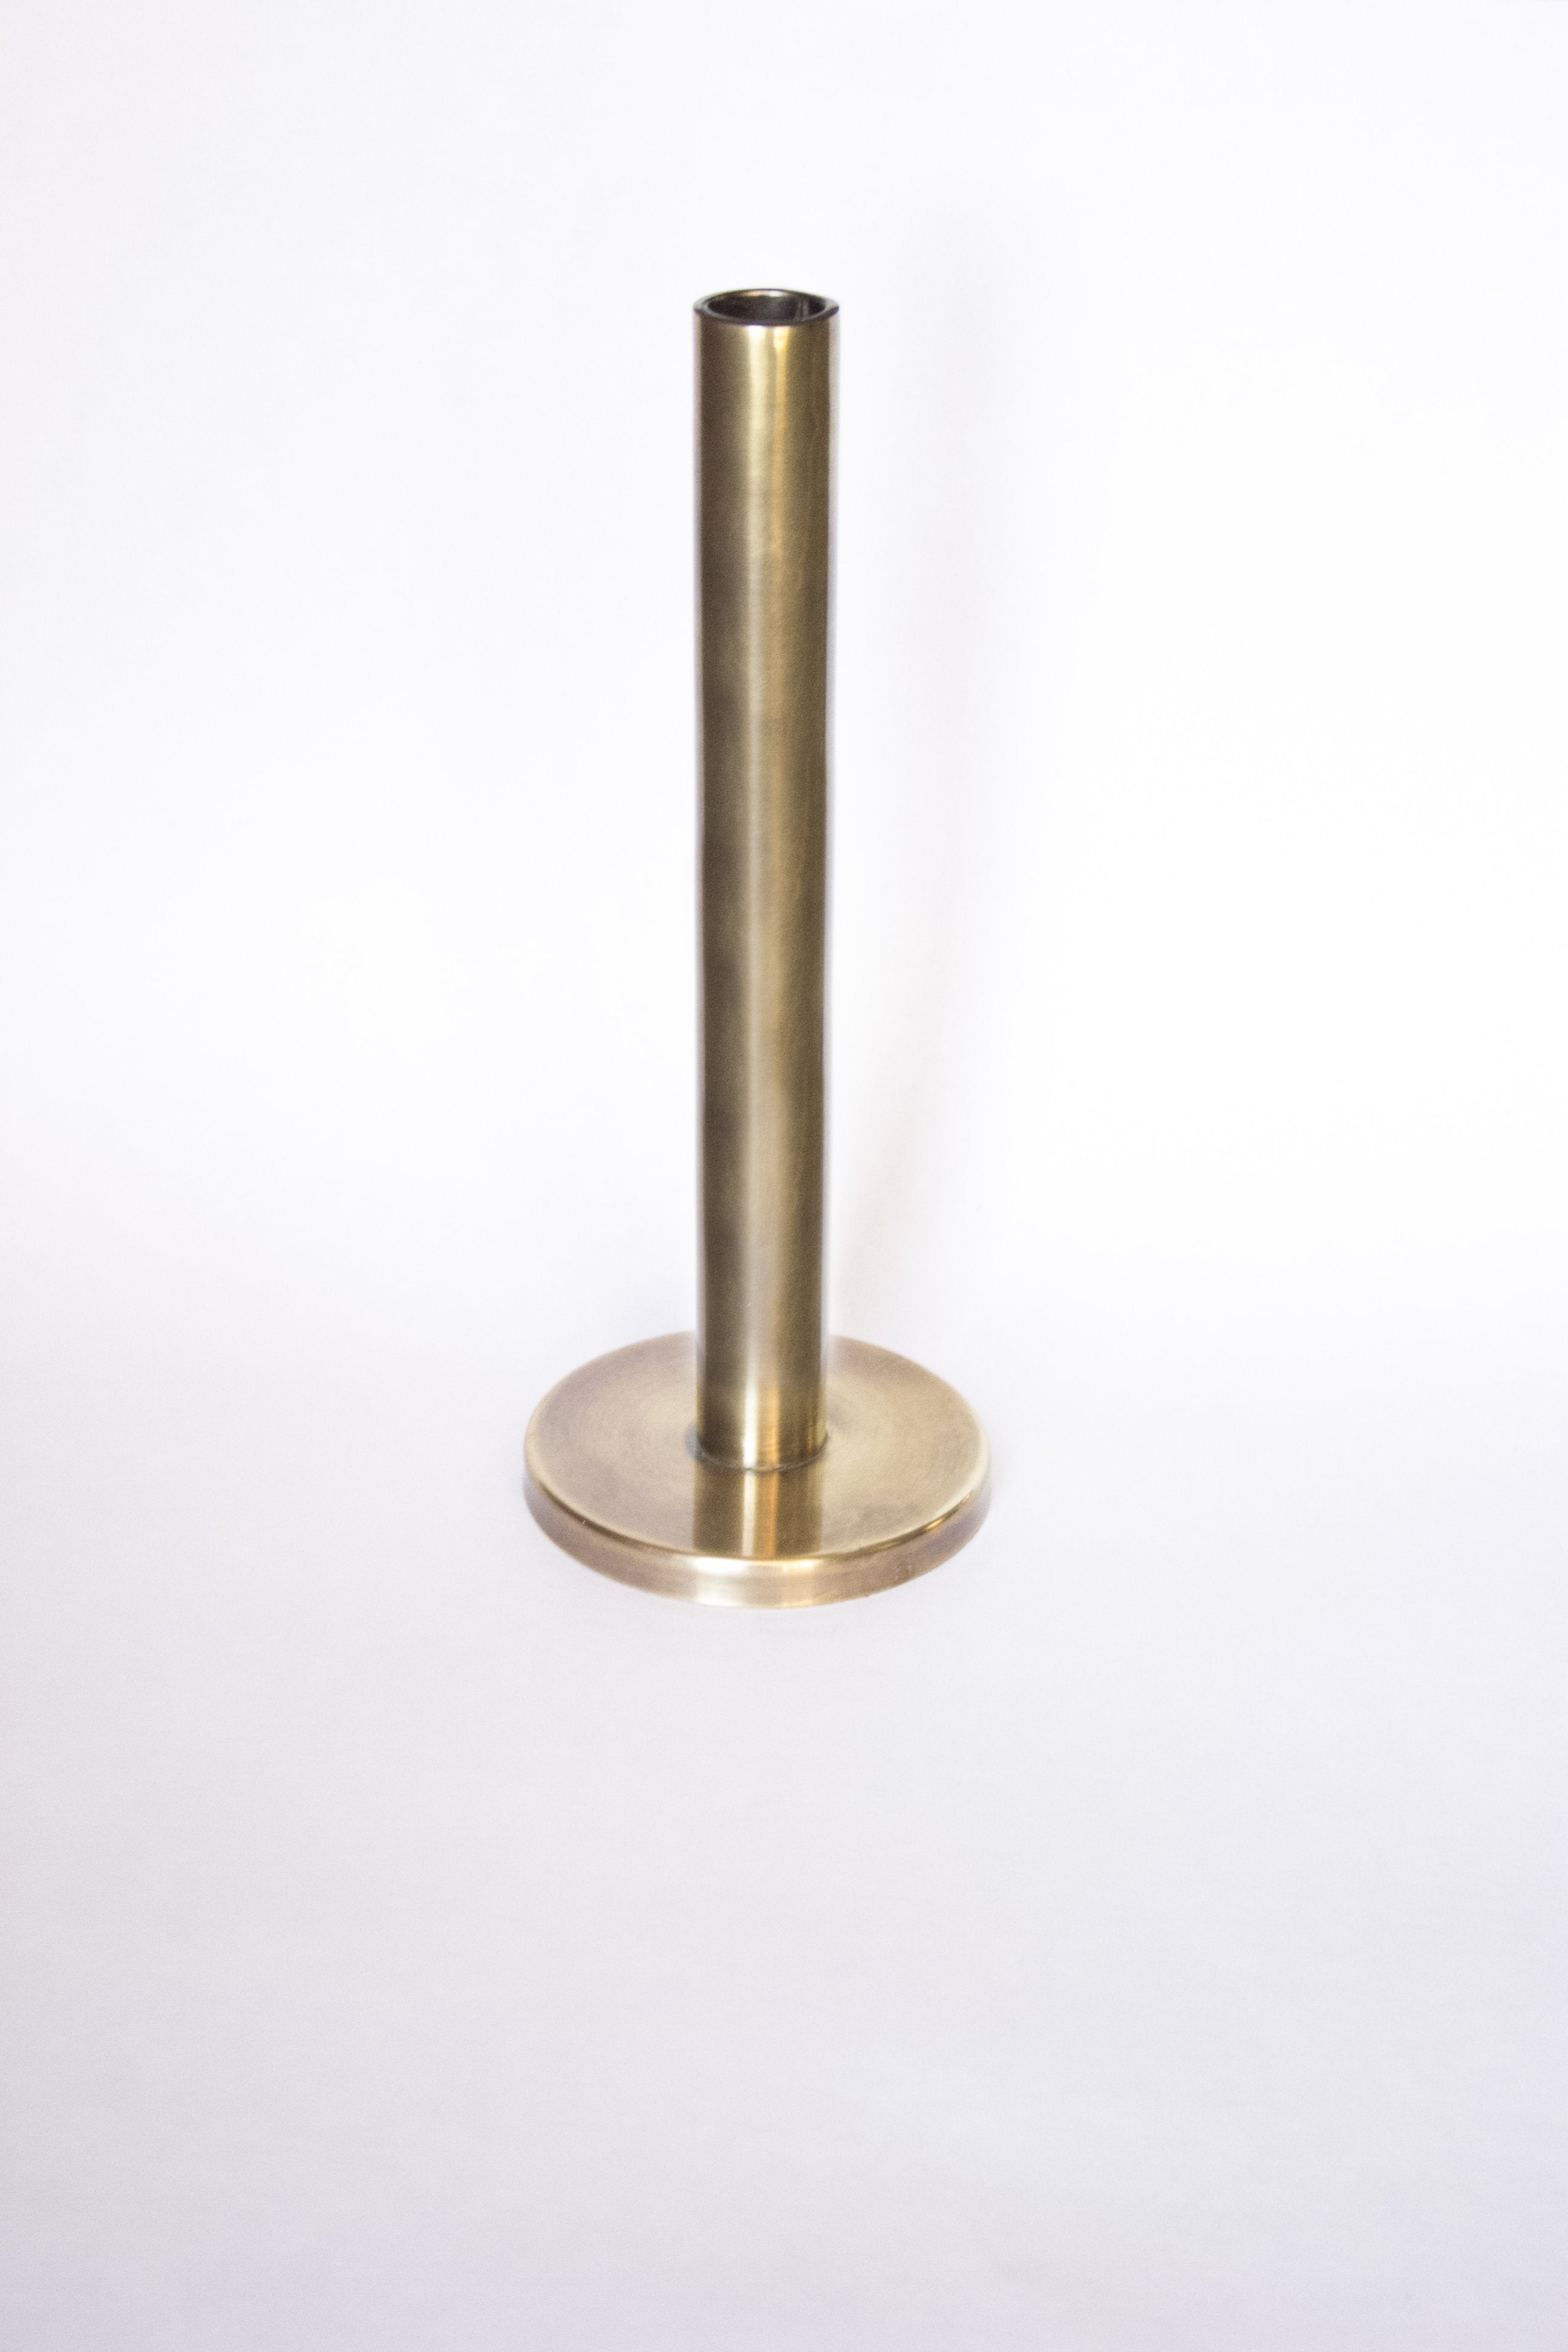 Antique Brass Candle Holders (set of 3) - Elizabeth Hales Design